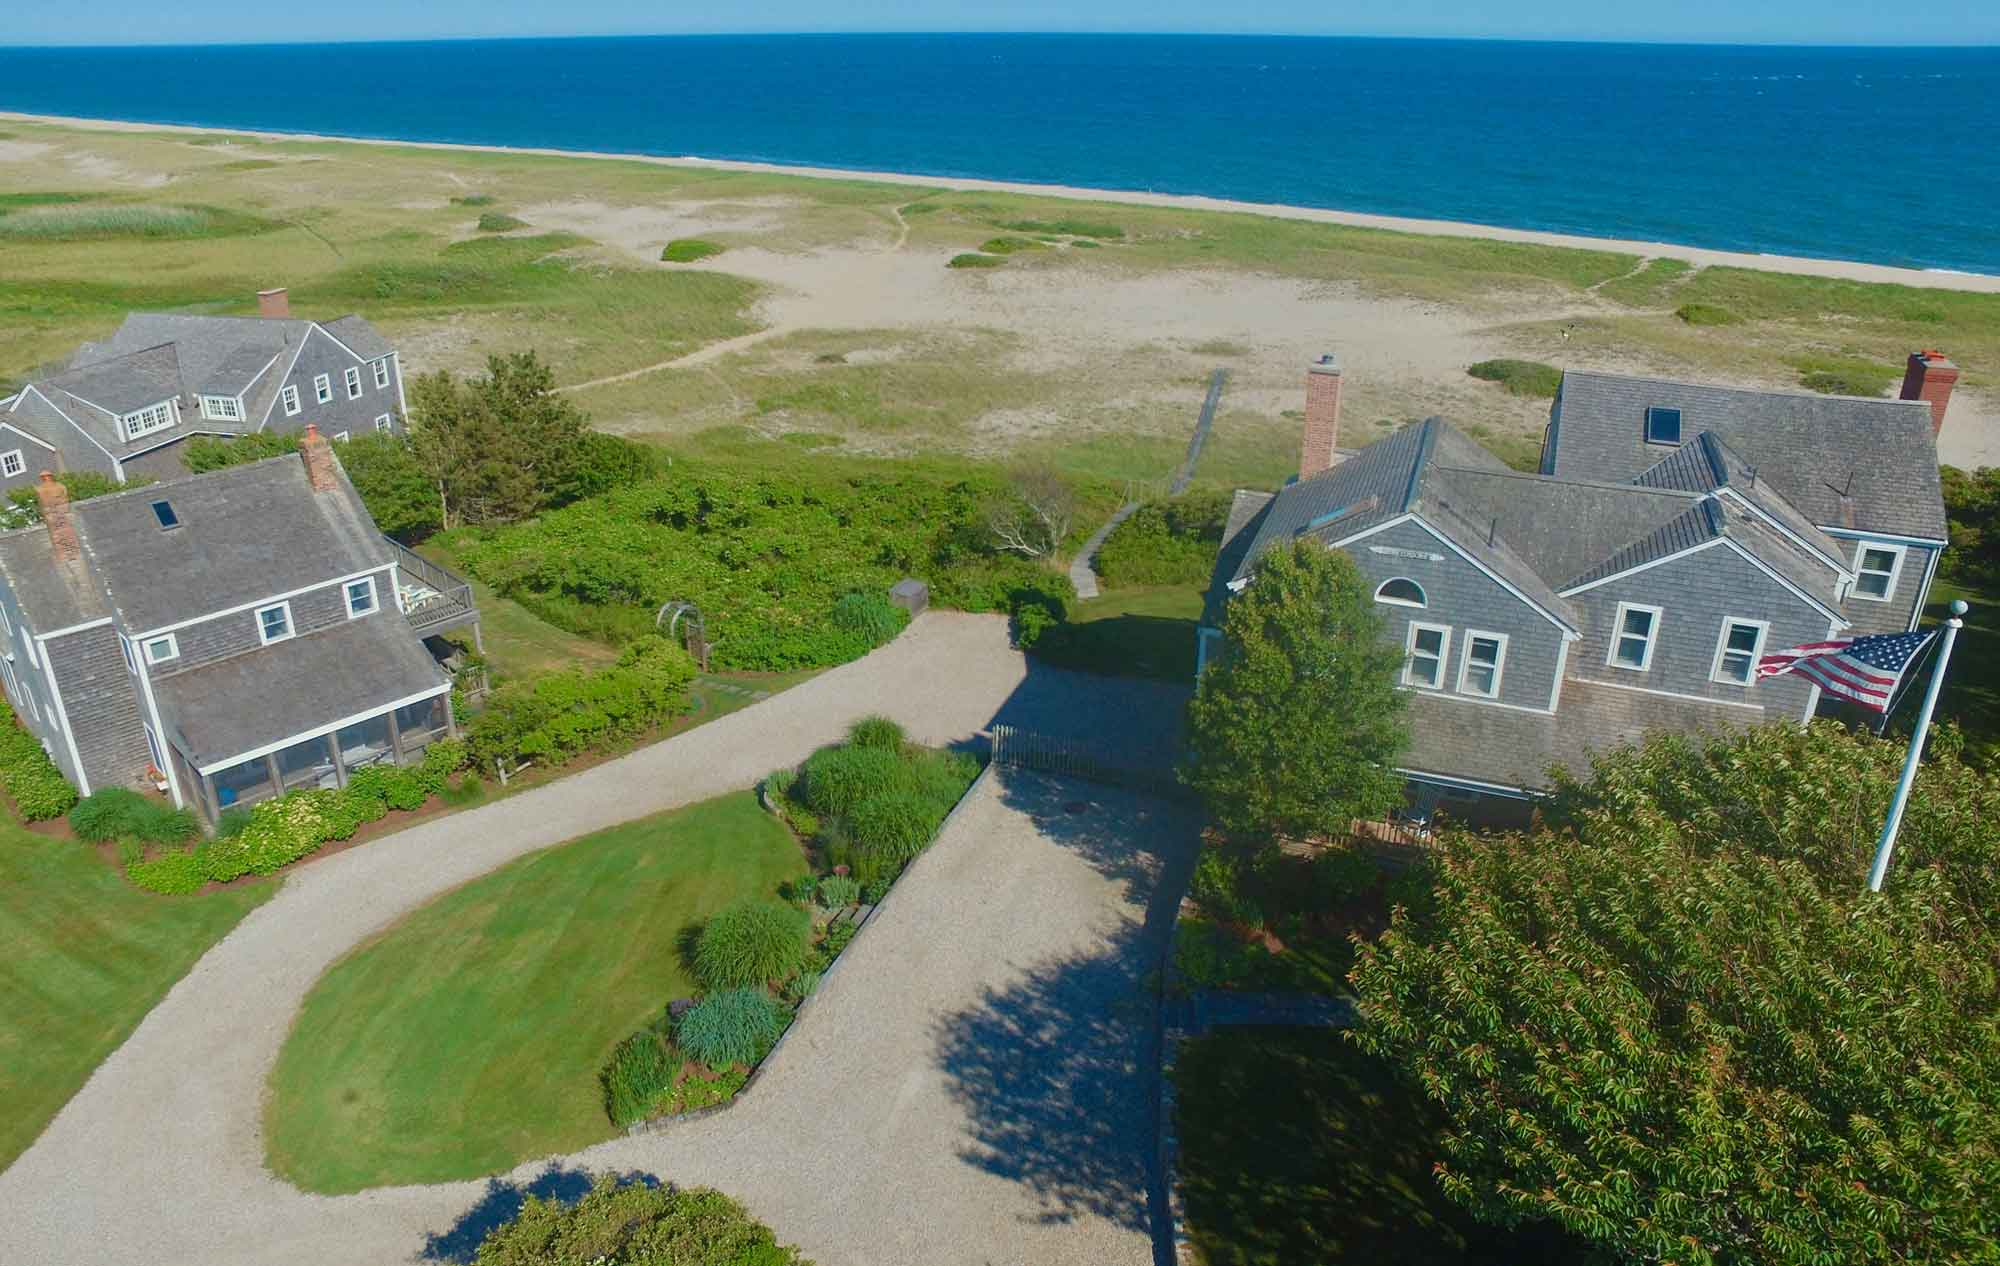 Featuring incredible ocean views, this Nantucket oceanfront retreat is surrounded by beautifully landscaped gardens, with access to a boardwalk leading past dunes to a quiet sandy beach.